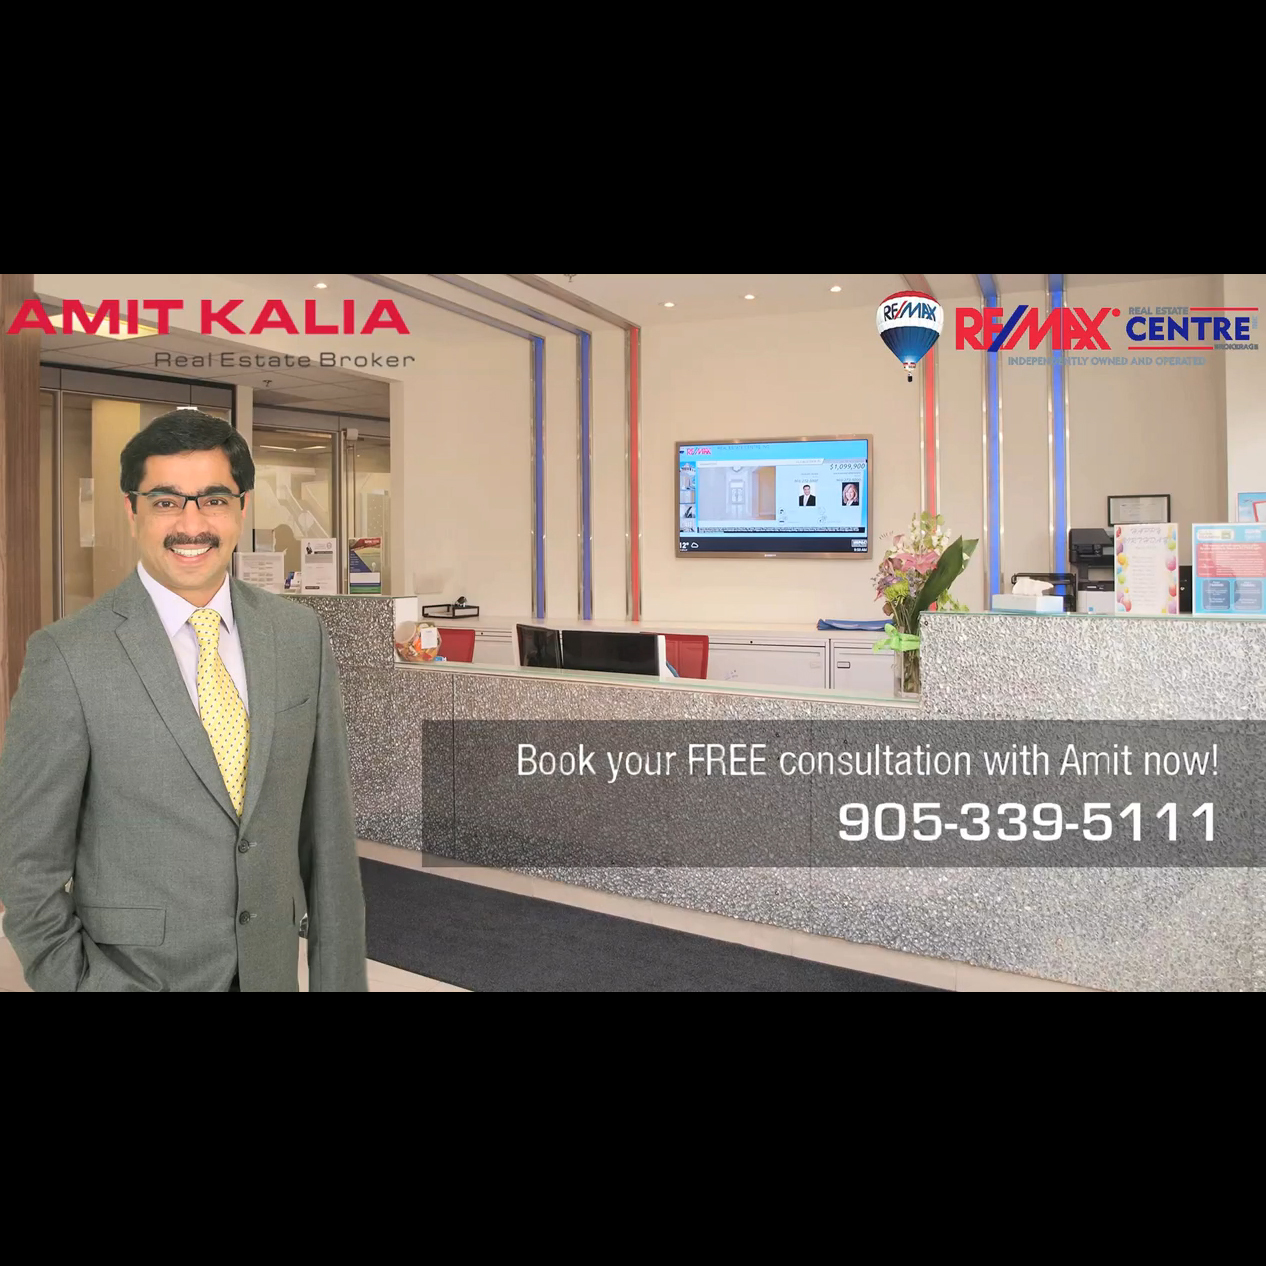 Amit Kalia Broker - Real Estate Agents & Brokers - 905-339-5111